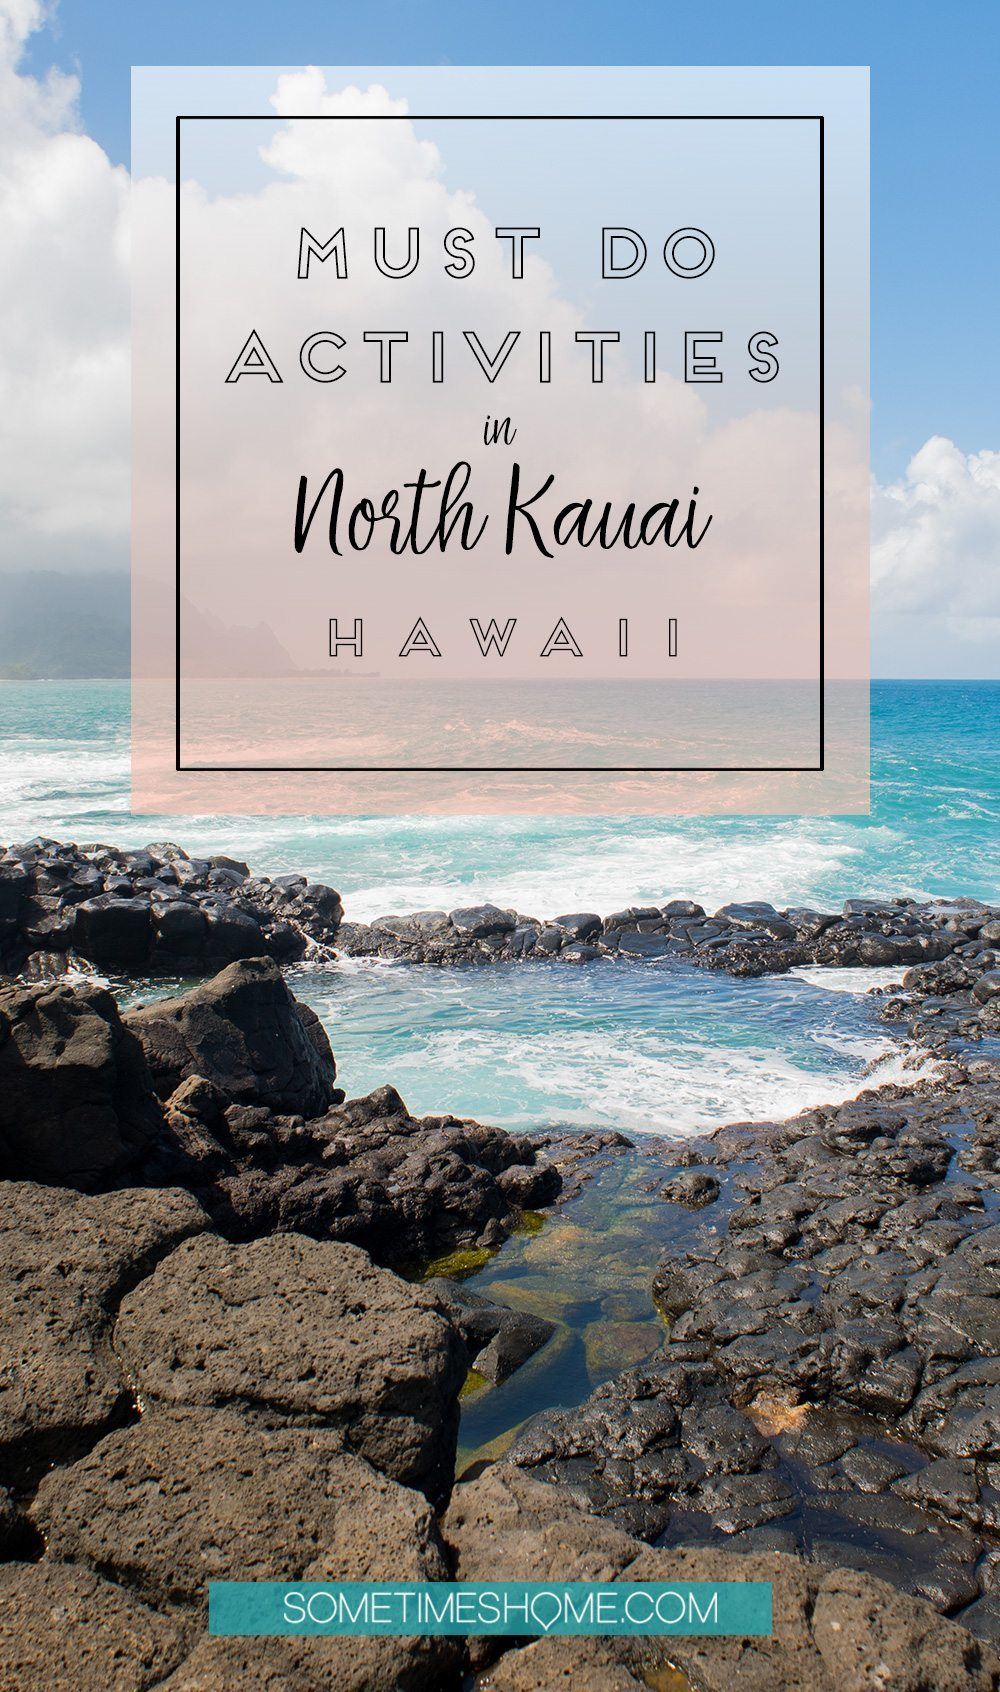 Must Do Activities in North Kauai, Hawaii on Sometimes Home travel blog.